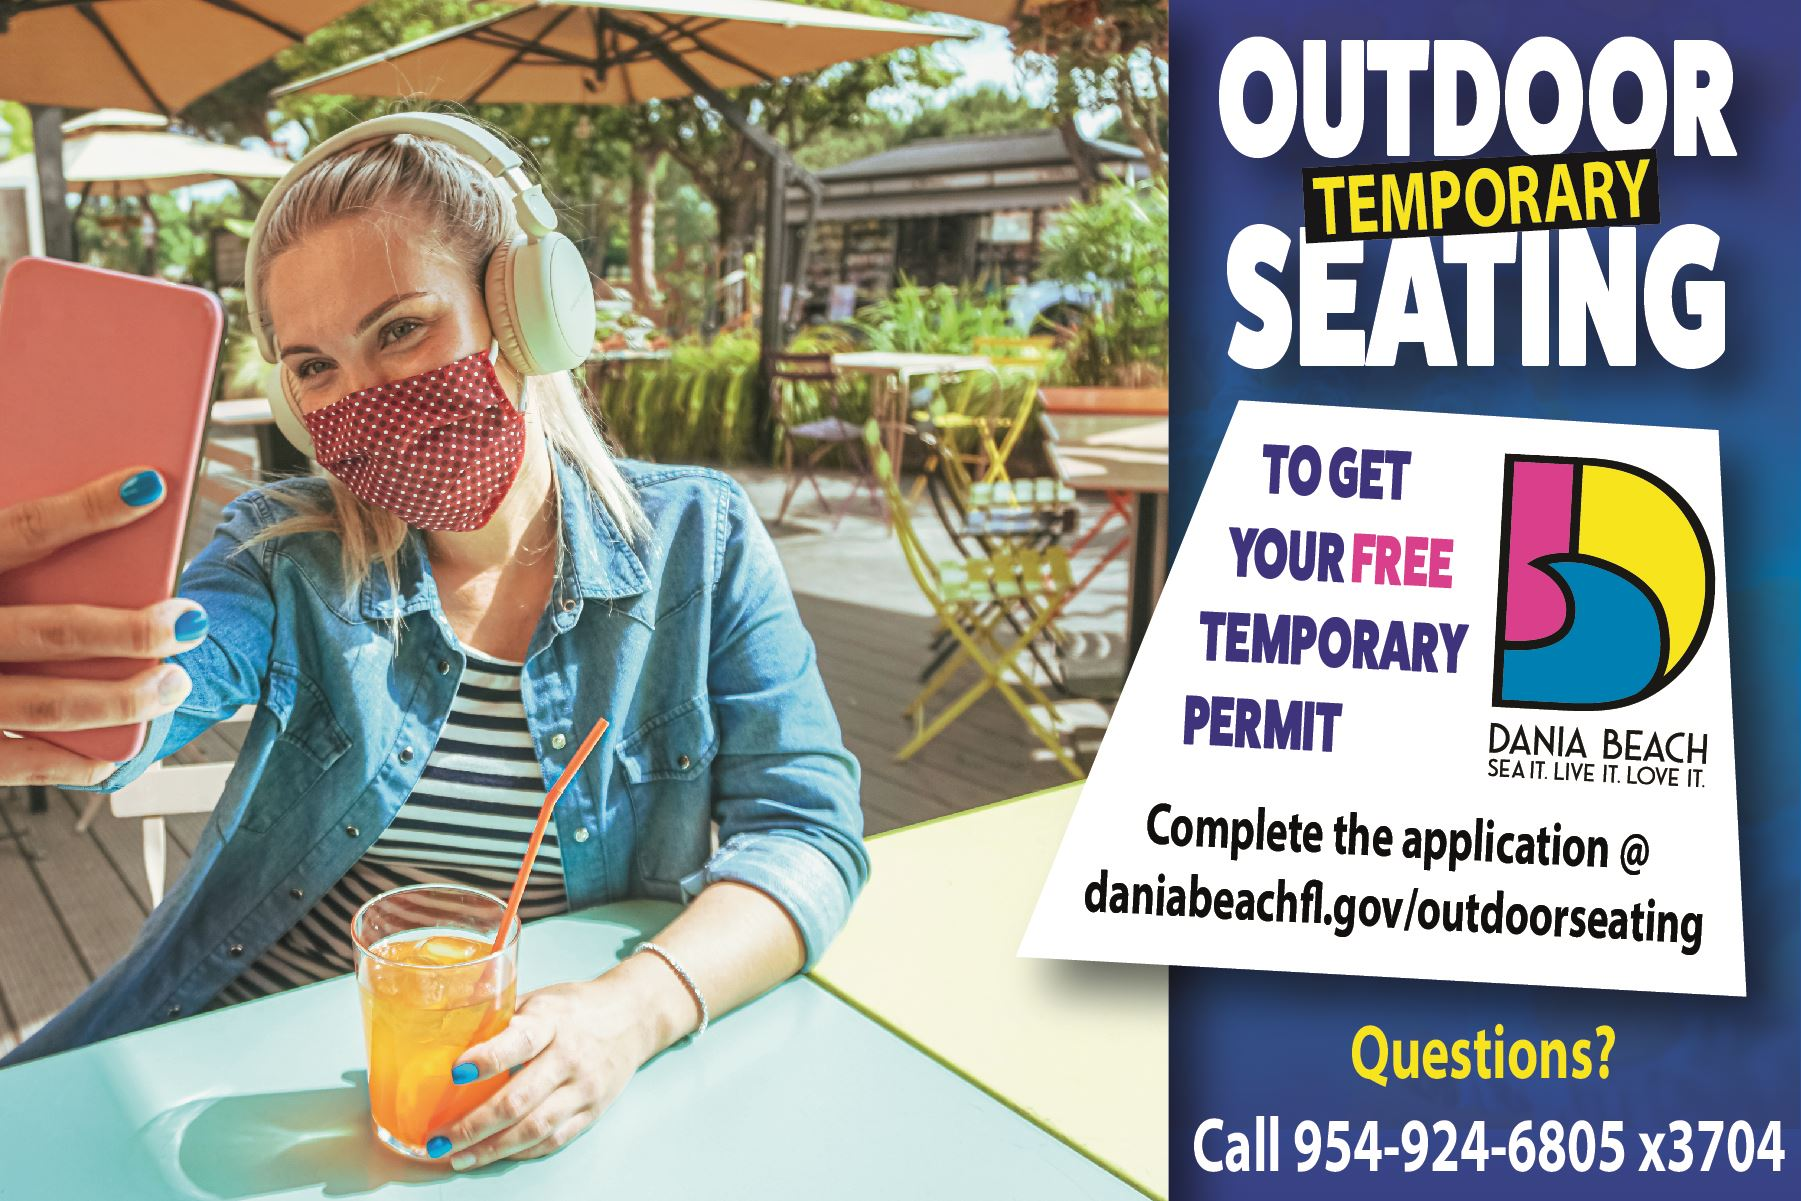 Dania Beach Temporary Outdoor Seating Permit